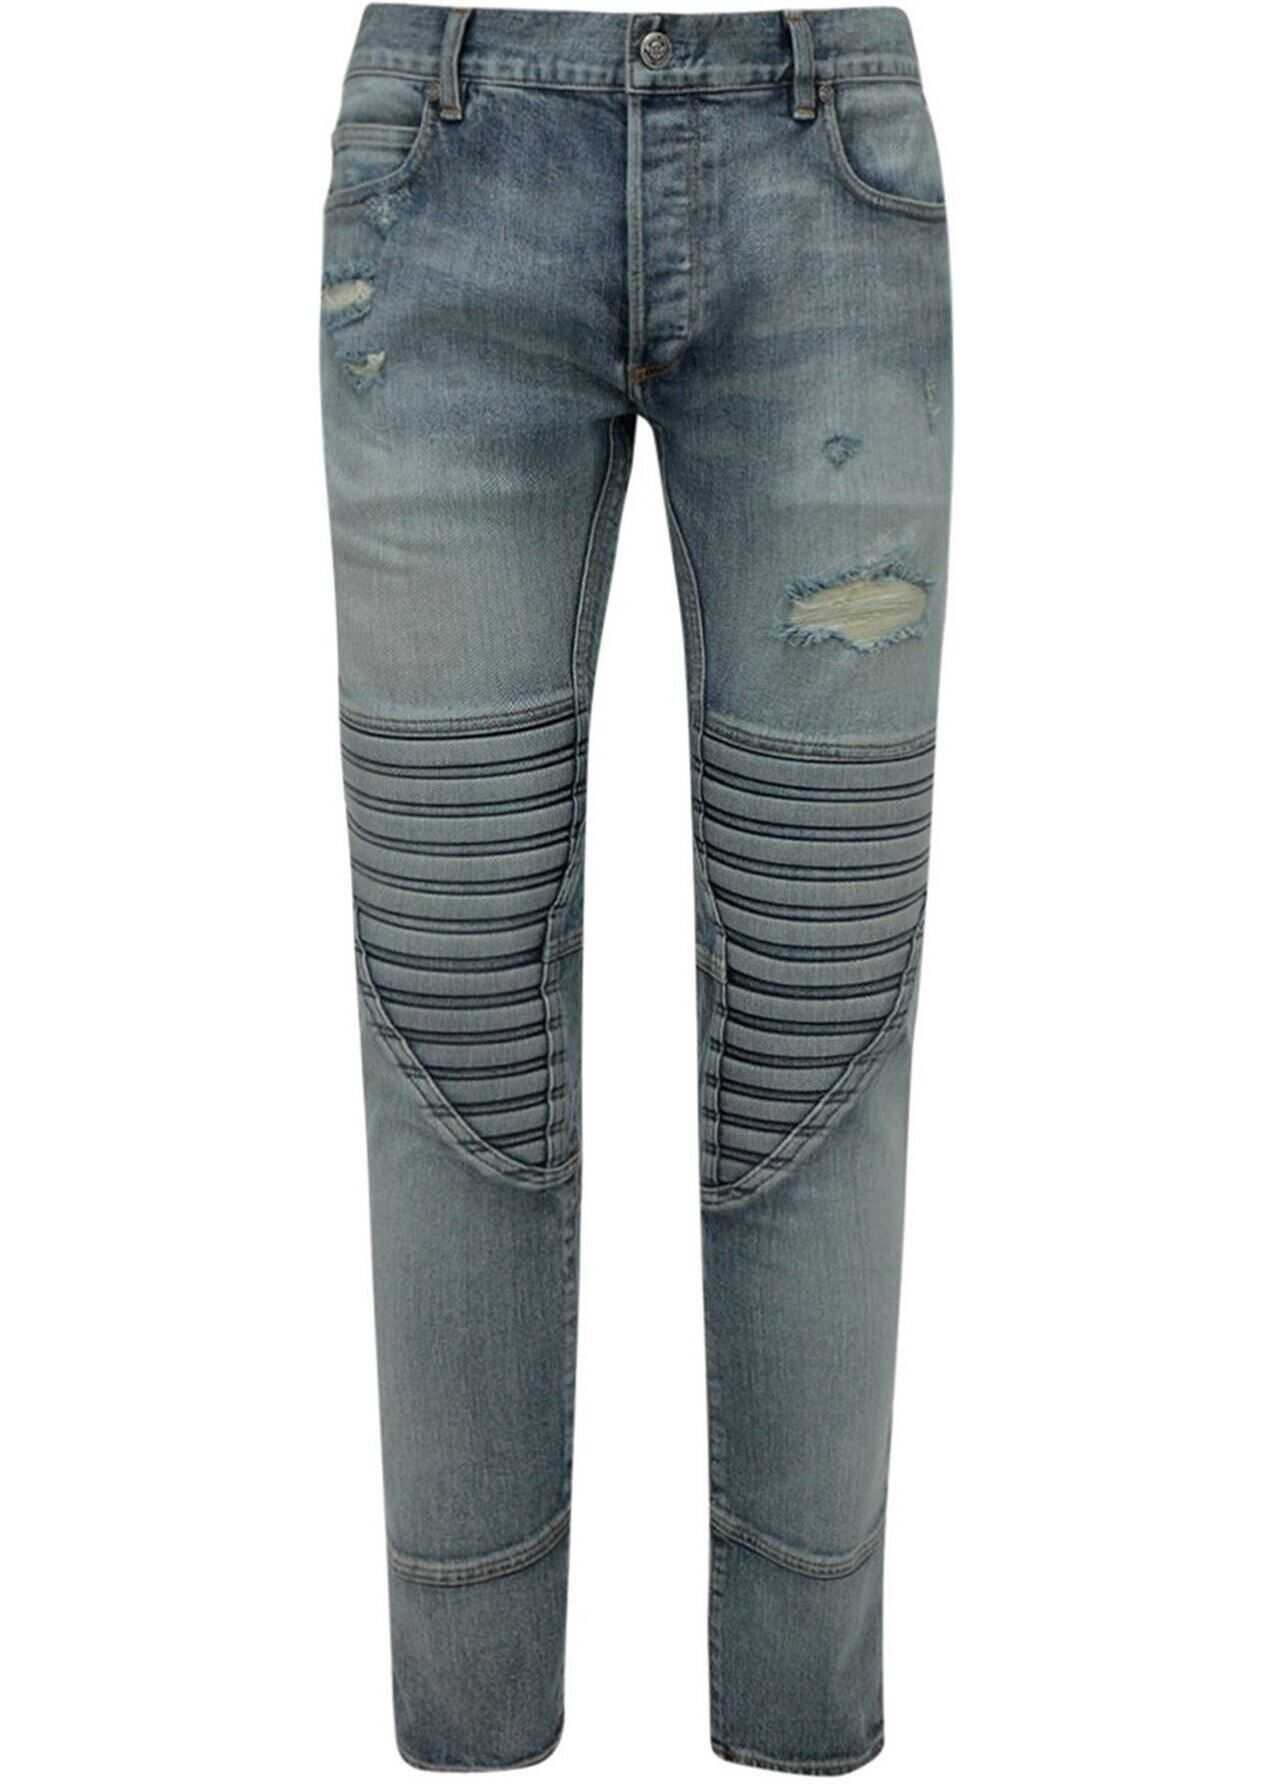 Balmain Distressed Skinny Jeans In Blue Blue imagine